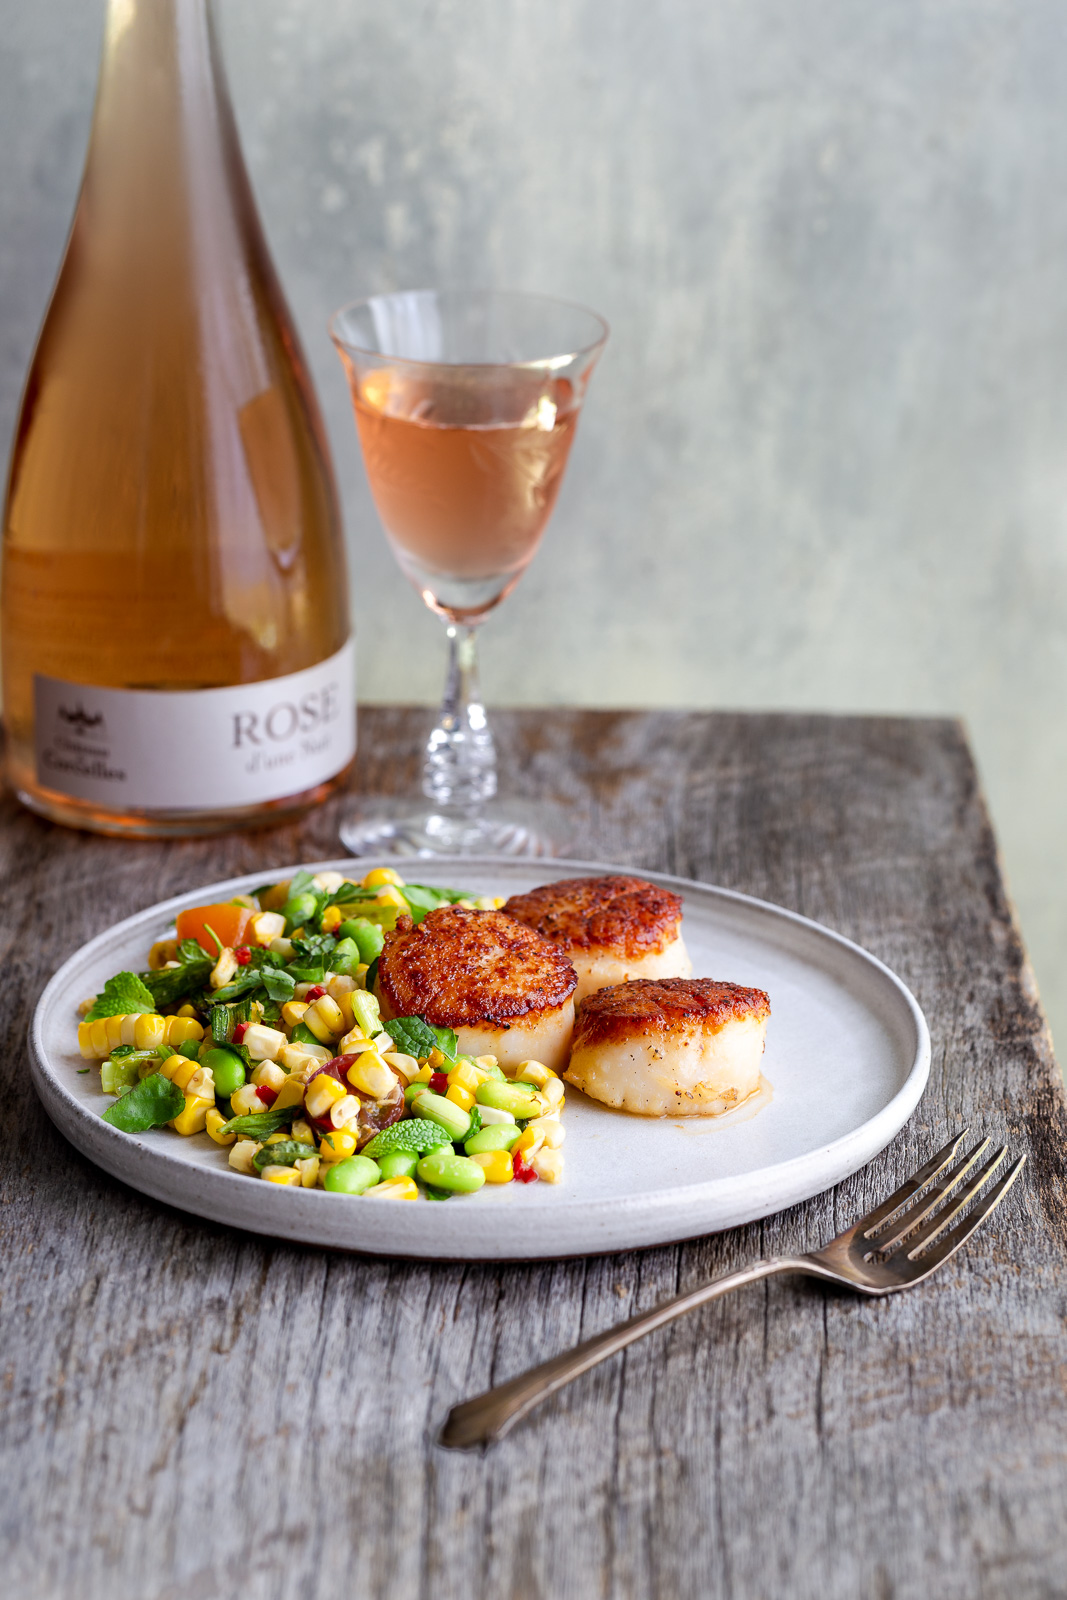 A plate of seared scallops and corn salad next to a glass of wine.